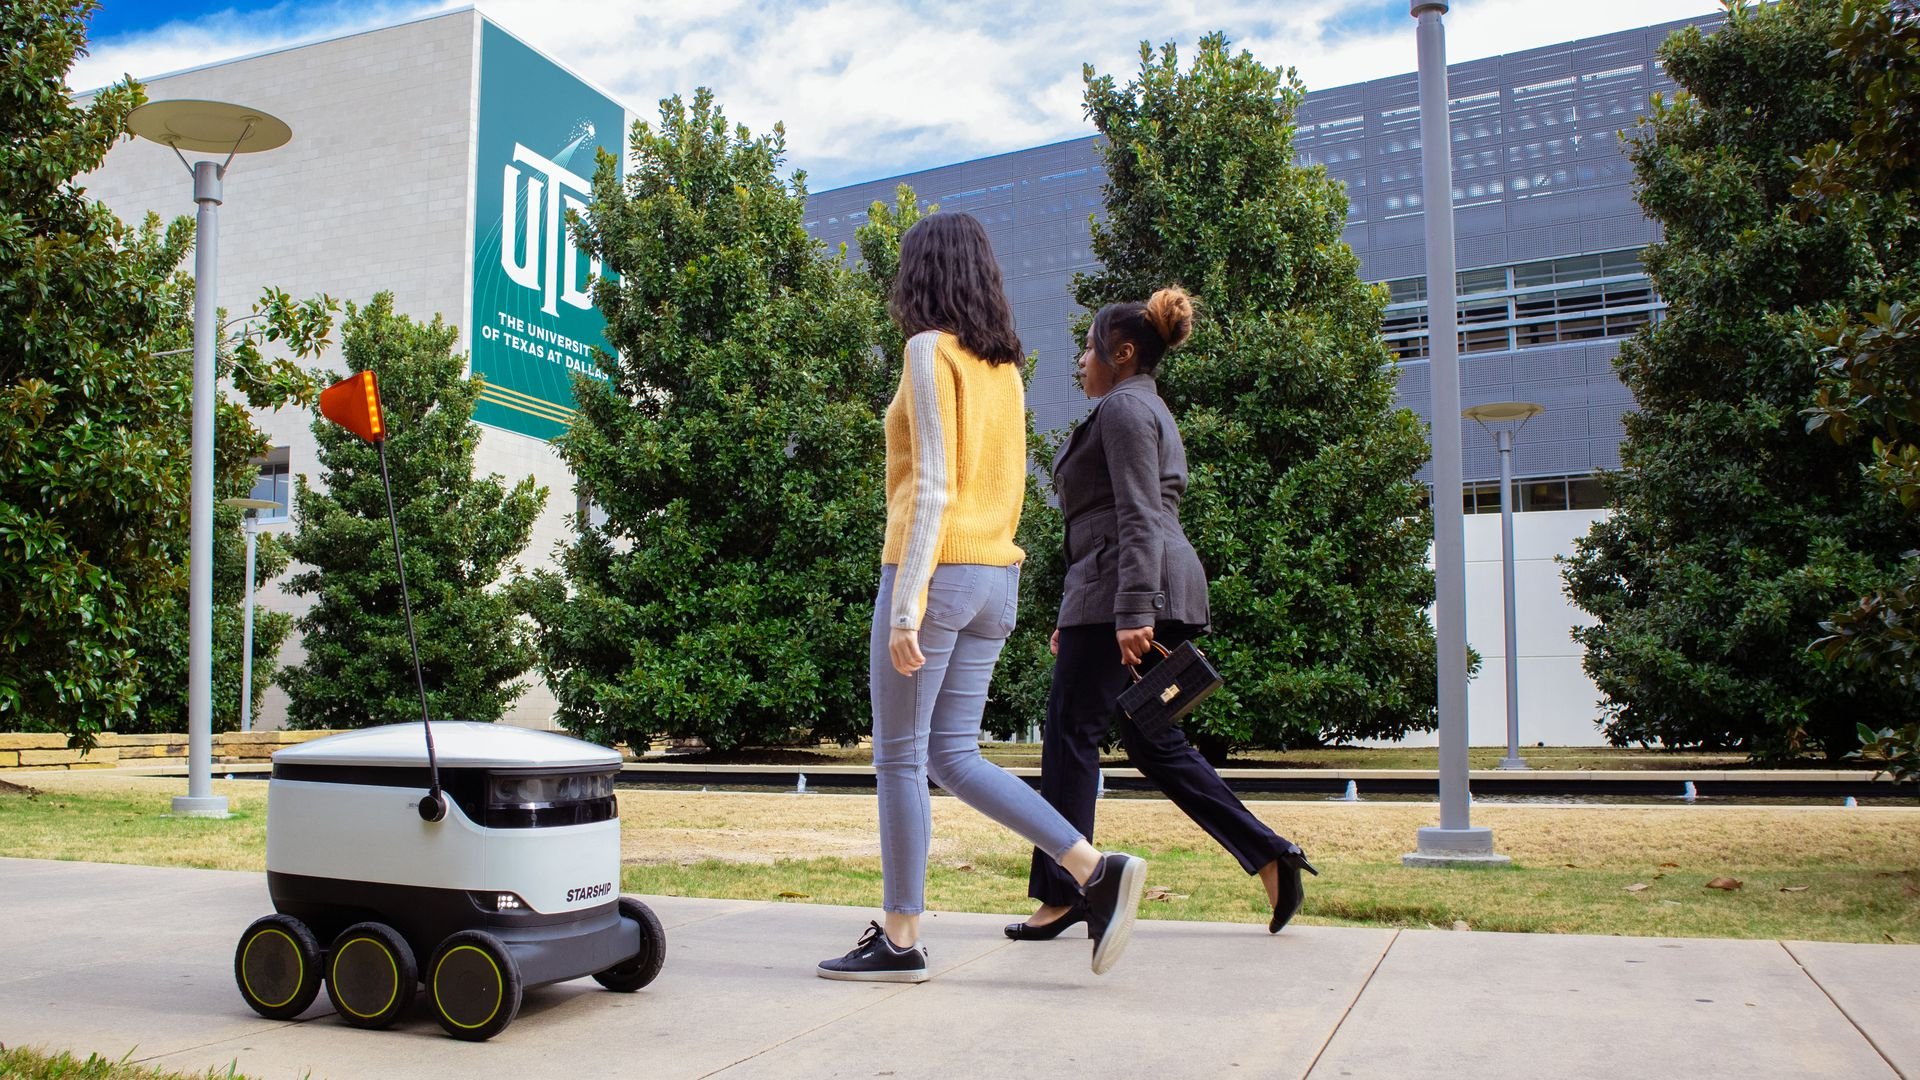 Sidewalk robots get legal rights as